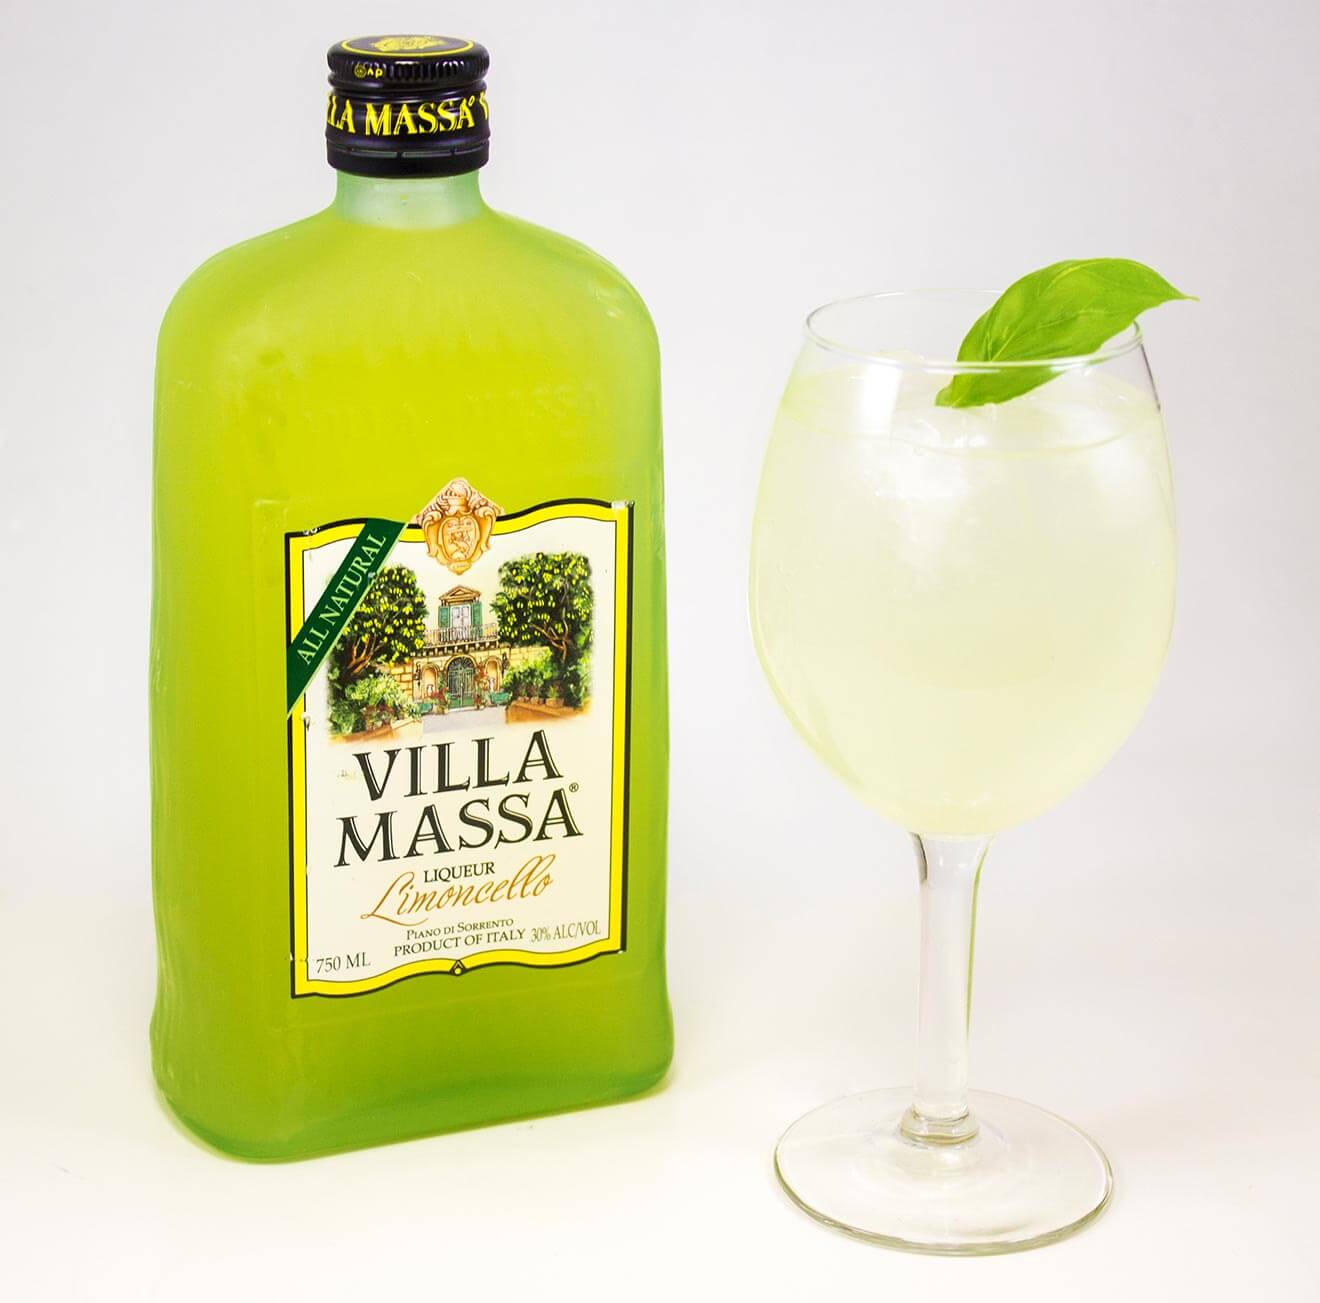 Villa Massa Tonica cocktail made with Limoncello liqueur